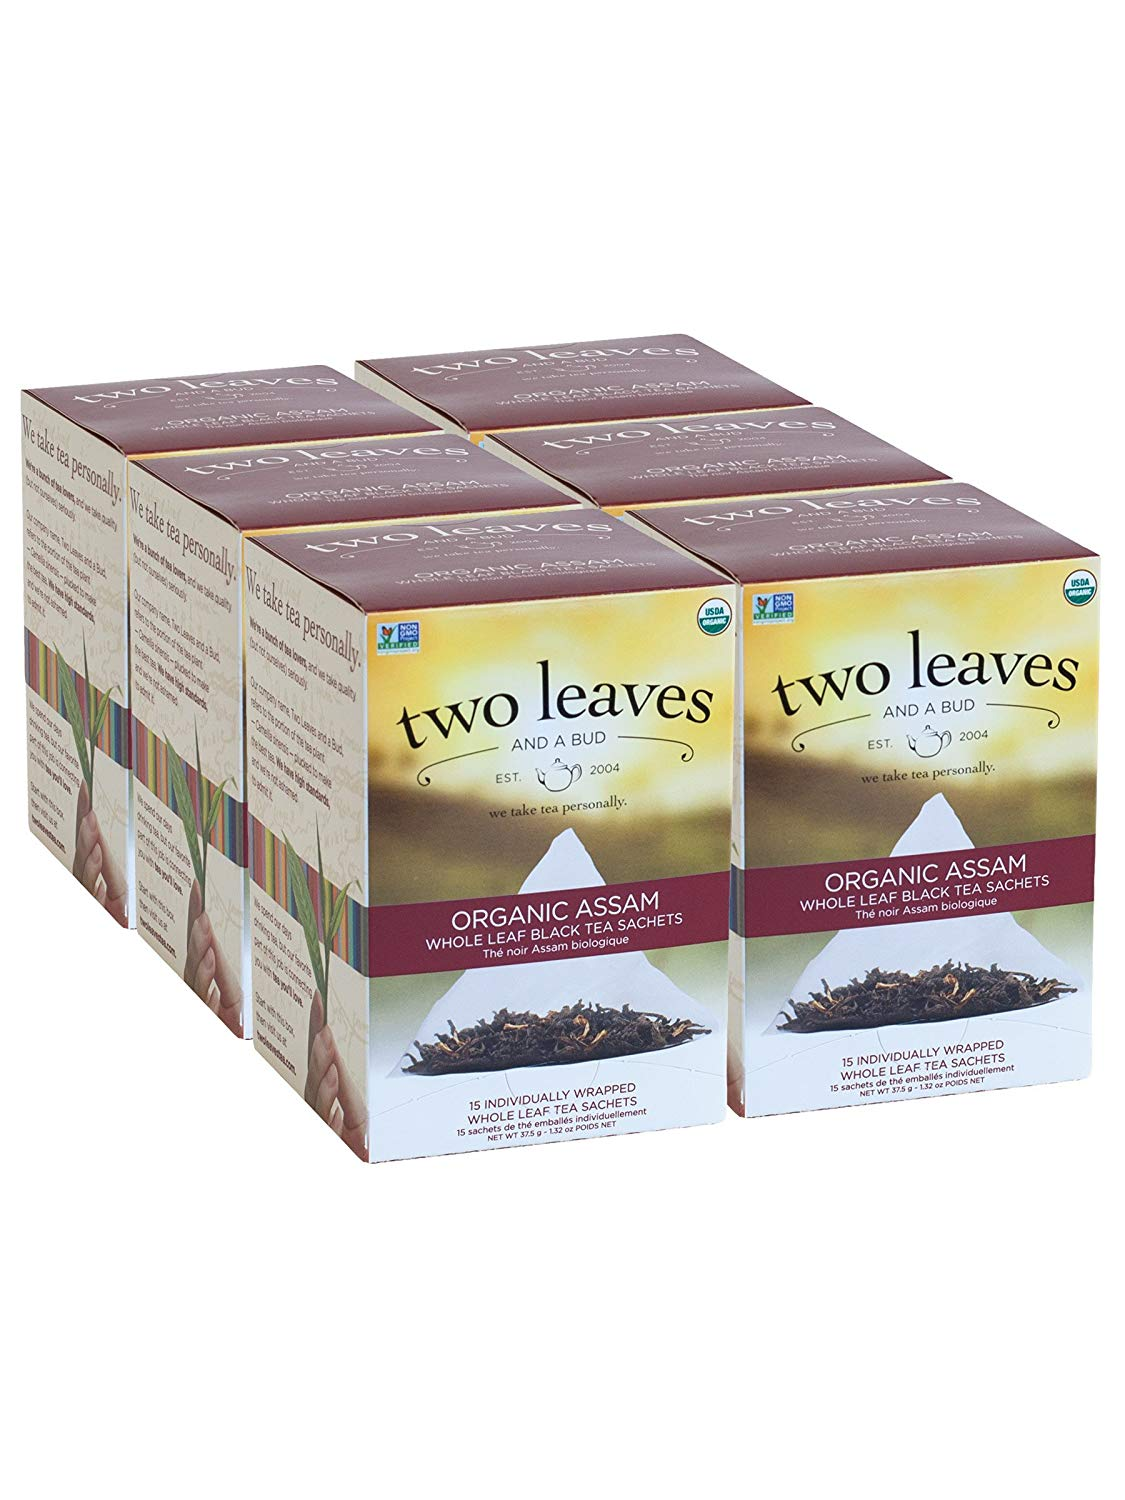 Two Leaves and a Bud Organic Assam Black Tea Bags, 15 Count (Pack of 6) Organic Whole Leaf Full Caffeine Black Tea in Pyramid Sachet Bags, Delicious Hot or Iced with Milk and Sugar or Honey or Plain